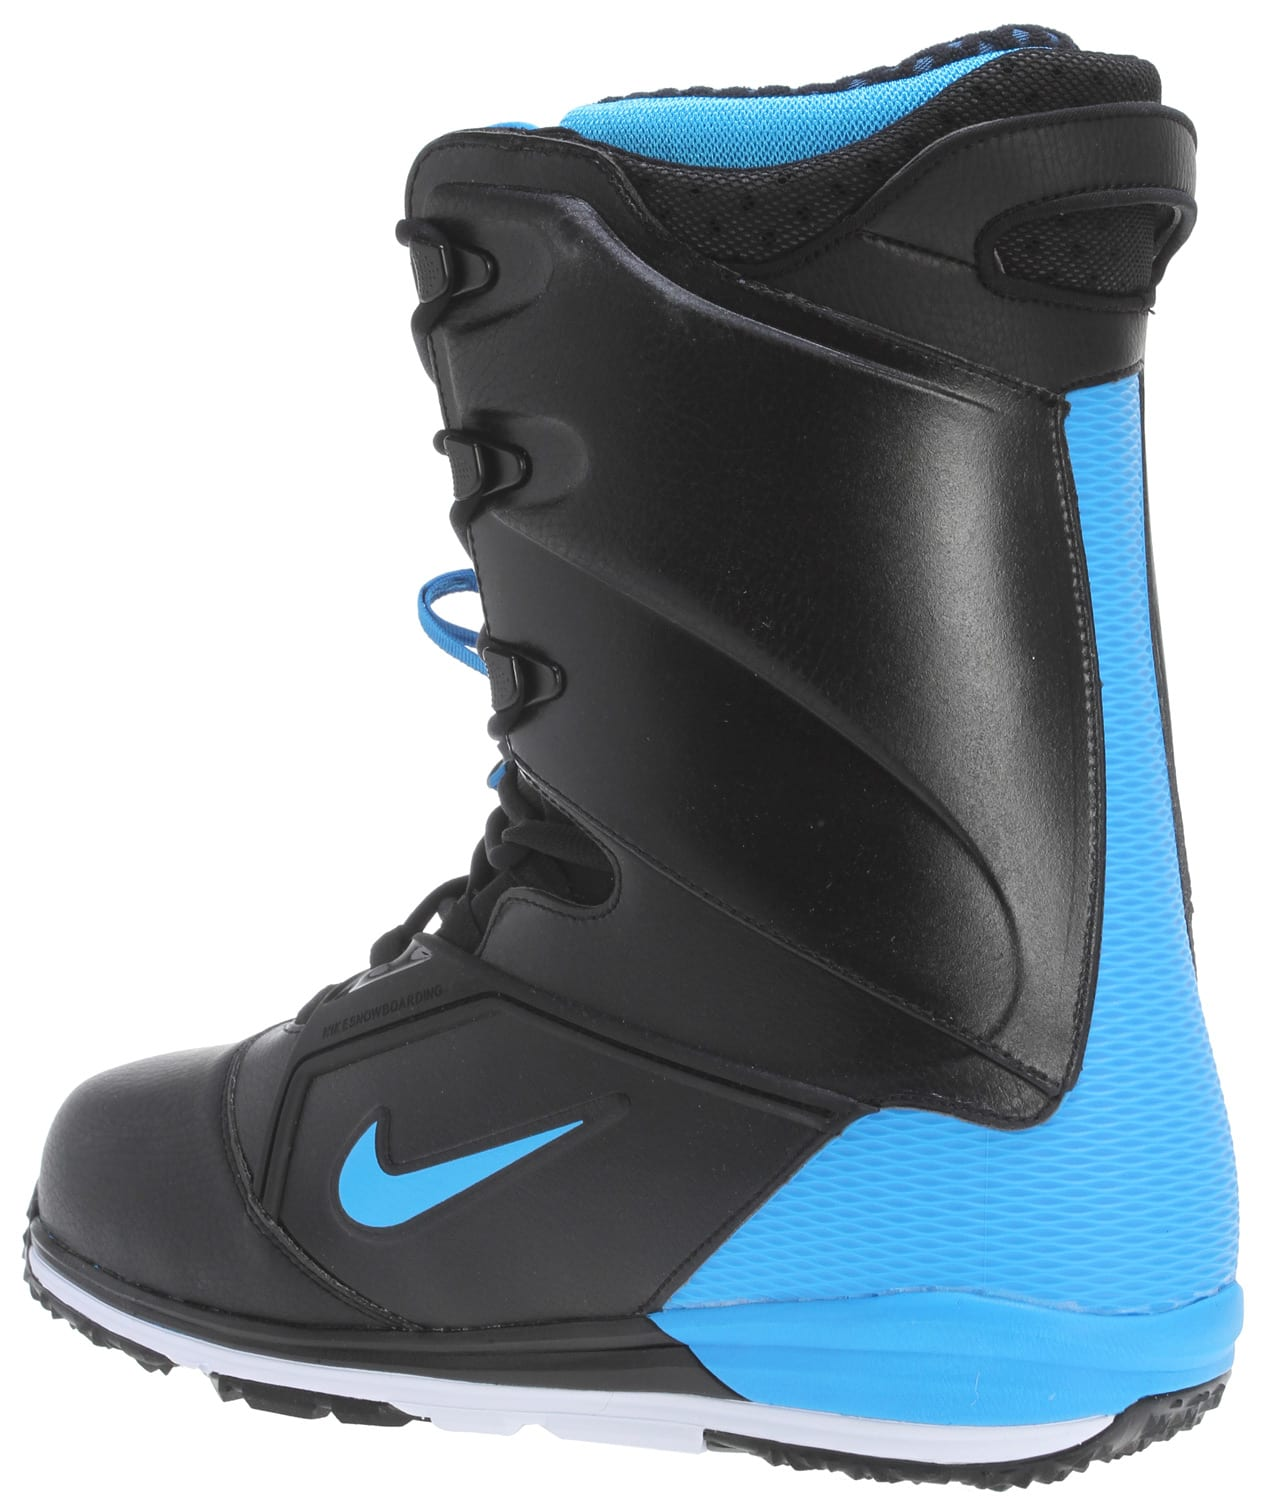 On Sale Nike Lunarendor Snowboard Boots Up To 55 Off